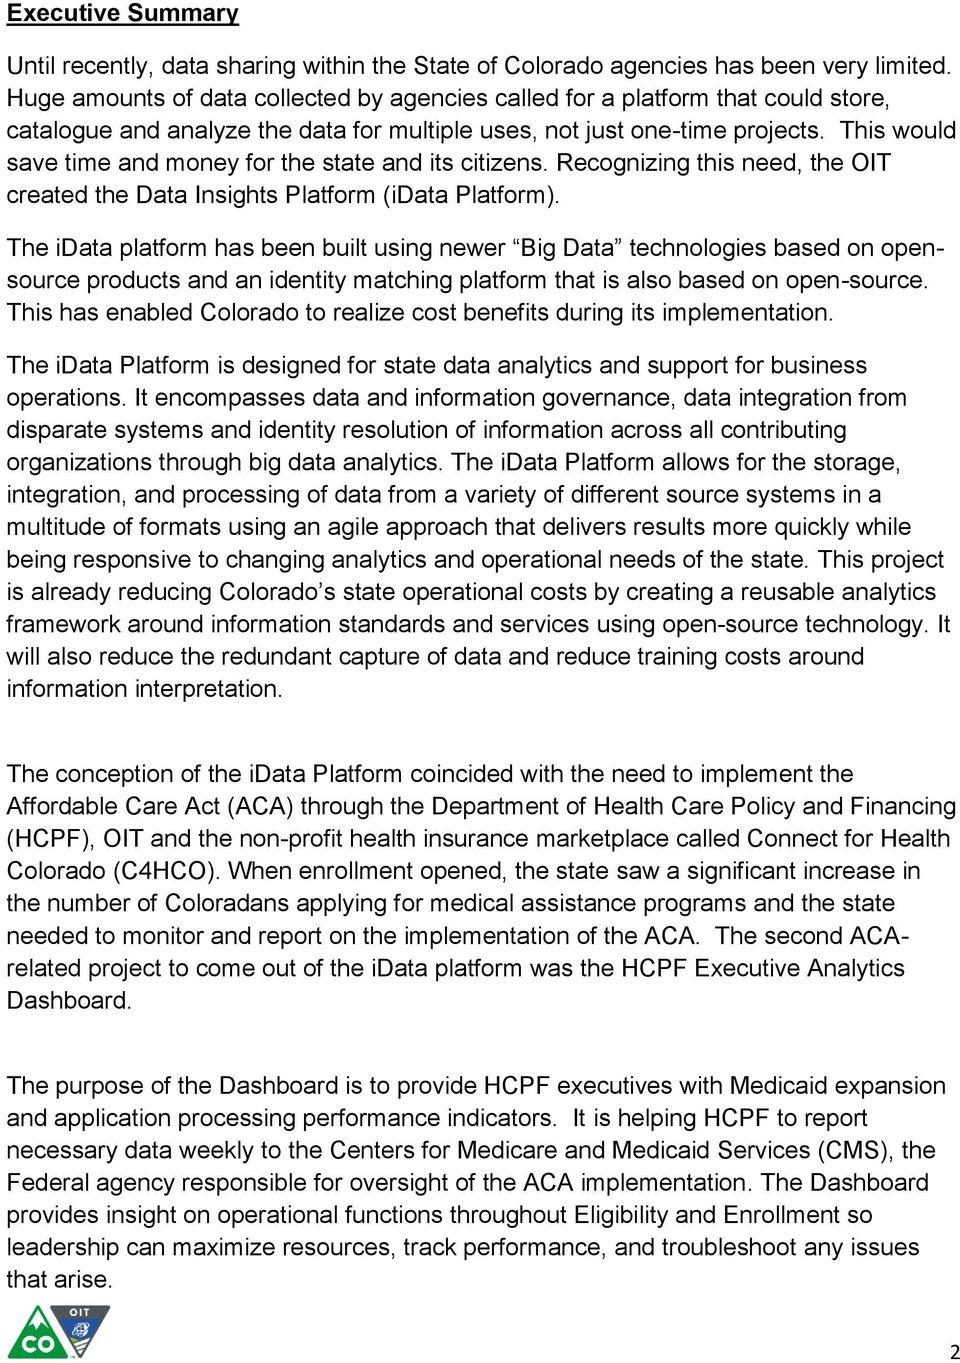 This would save time and money for the state and its citizens. Recognizing this need, the OIT created the Data Insights Platform (idata Platform).